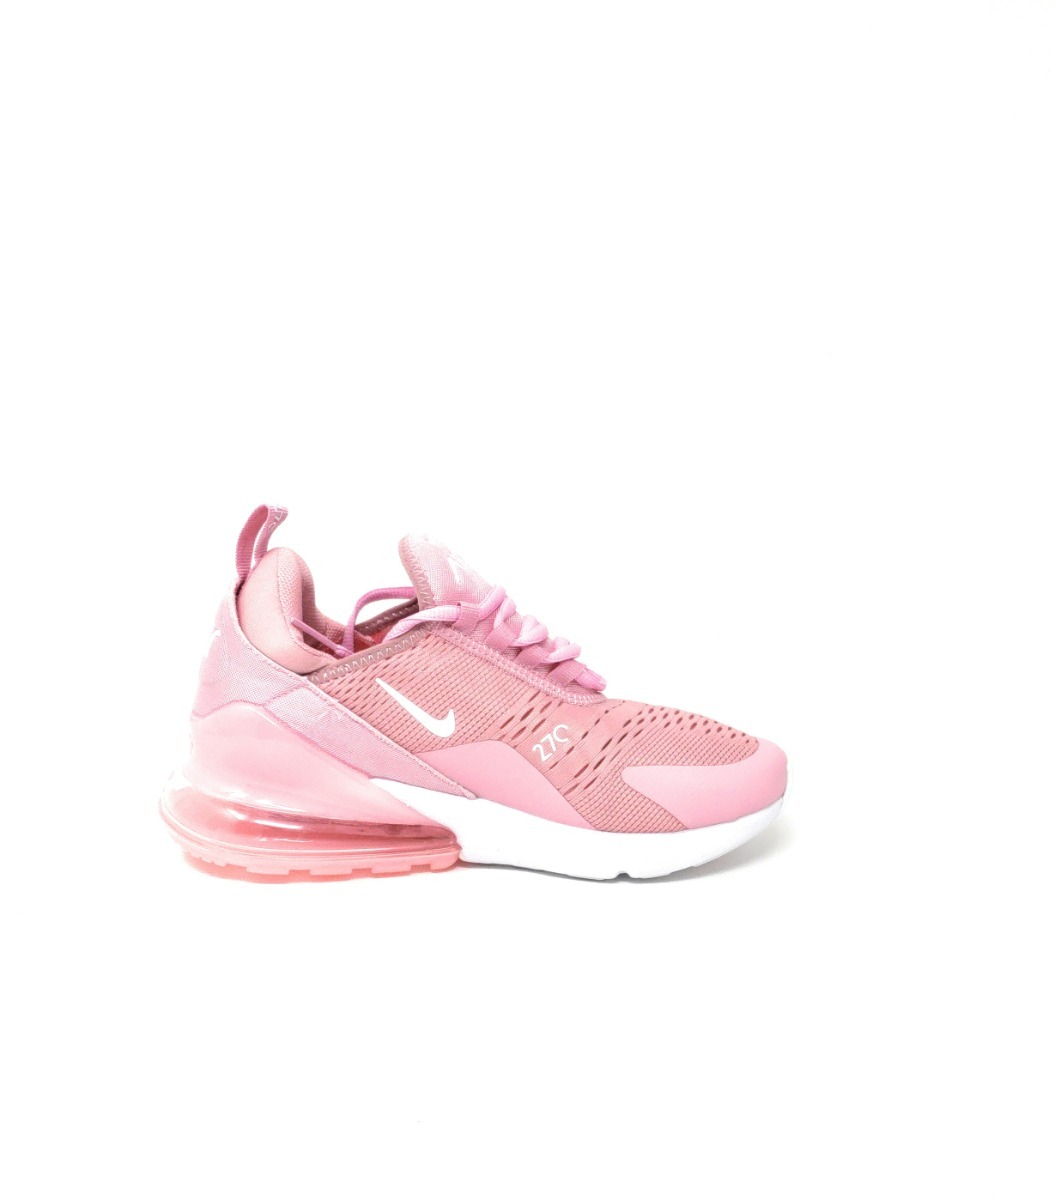 wholesale dealer fe219 b2a70 Tenis Nike Air Max 270 Pink Dama -  1,200.00 en Mercado Libr